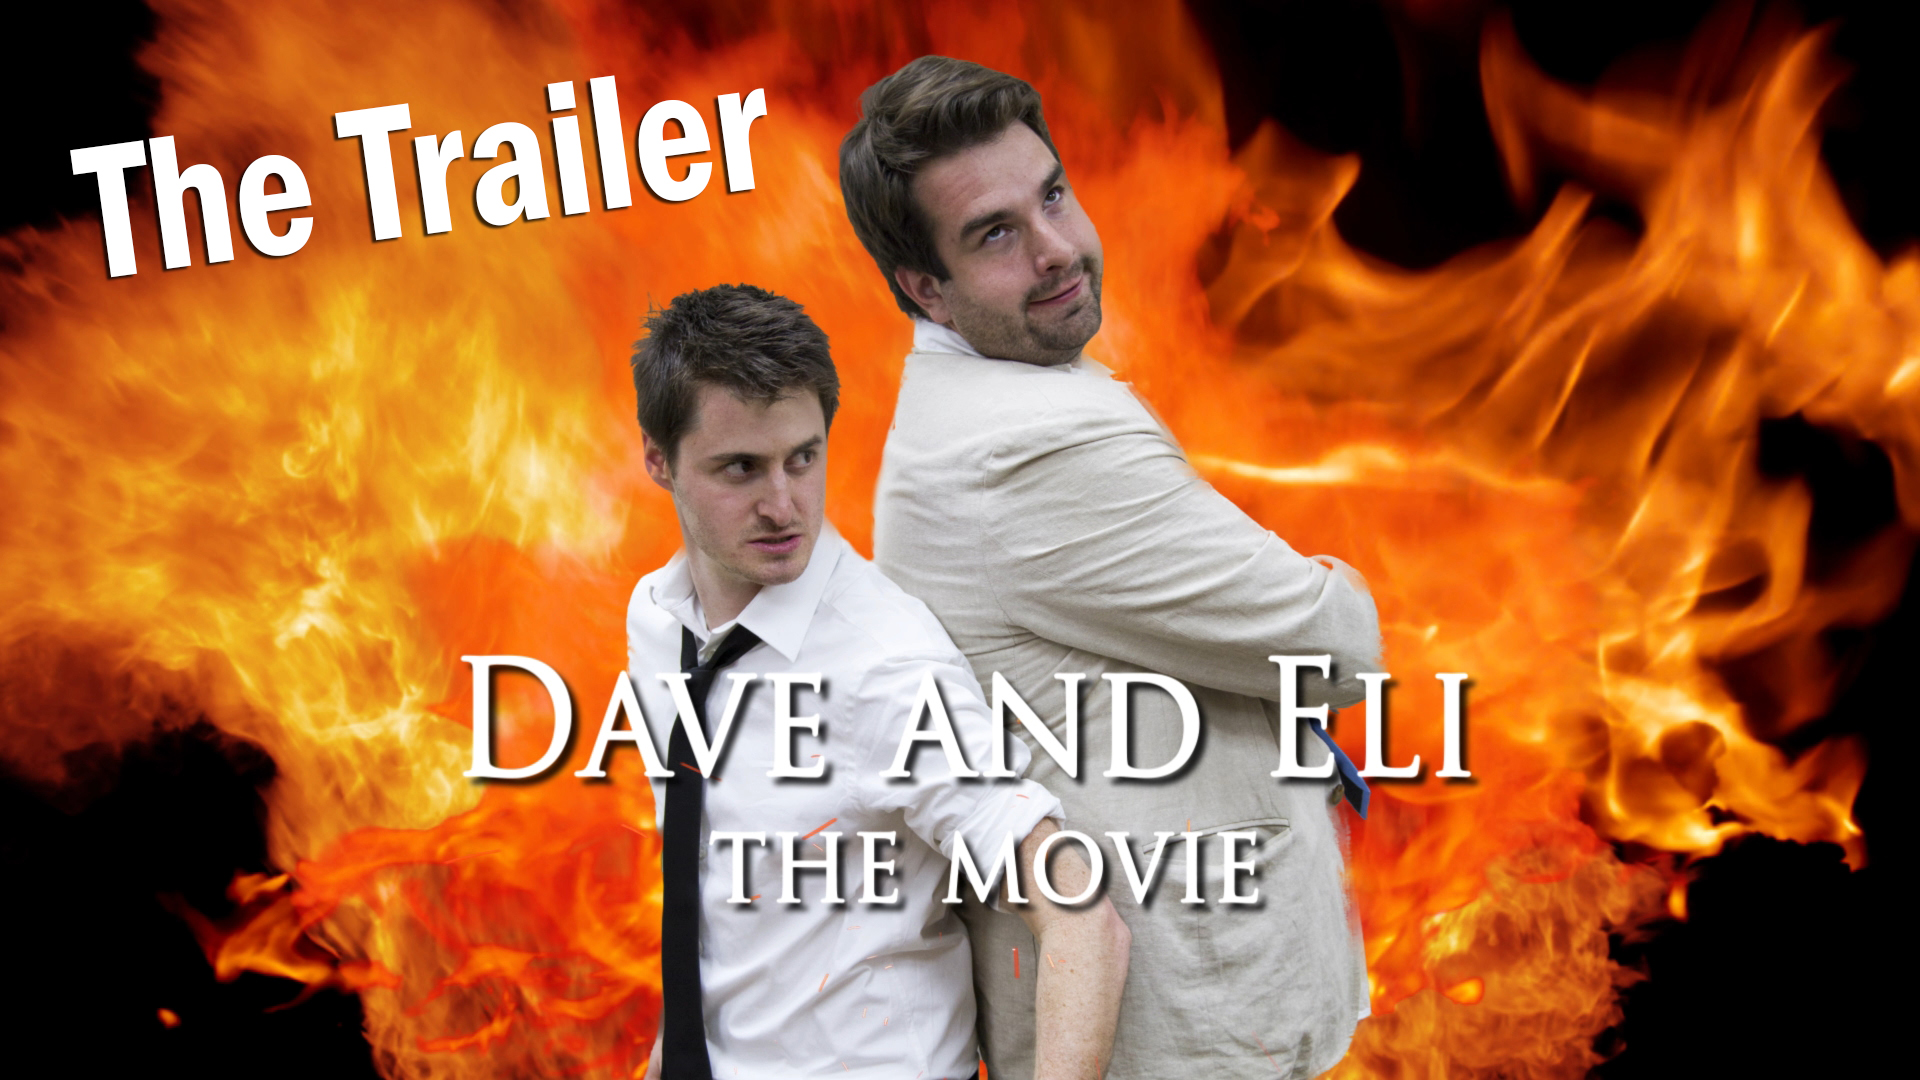 <b>Dave & Eli create a trailer for the greatest movie ever.</b>